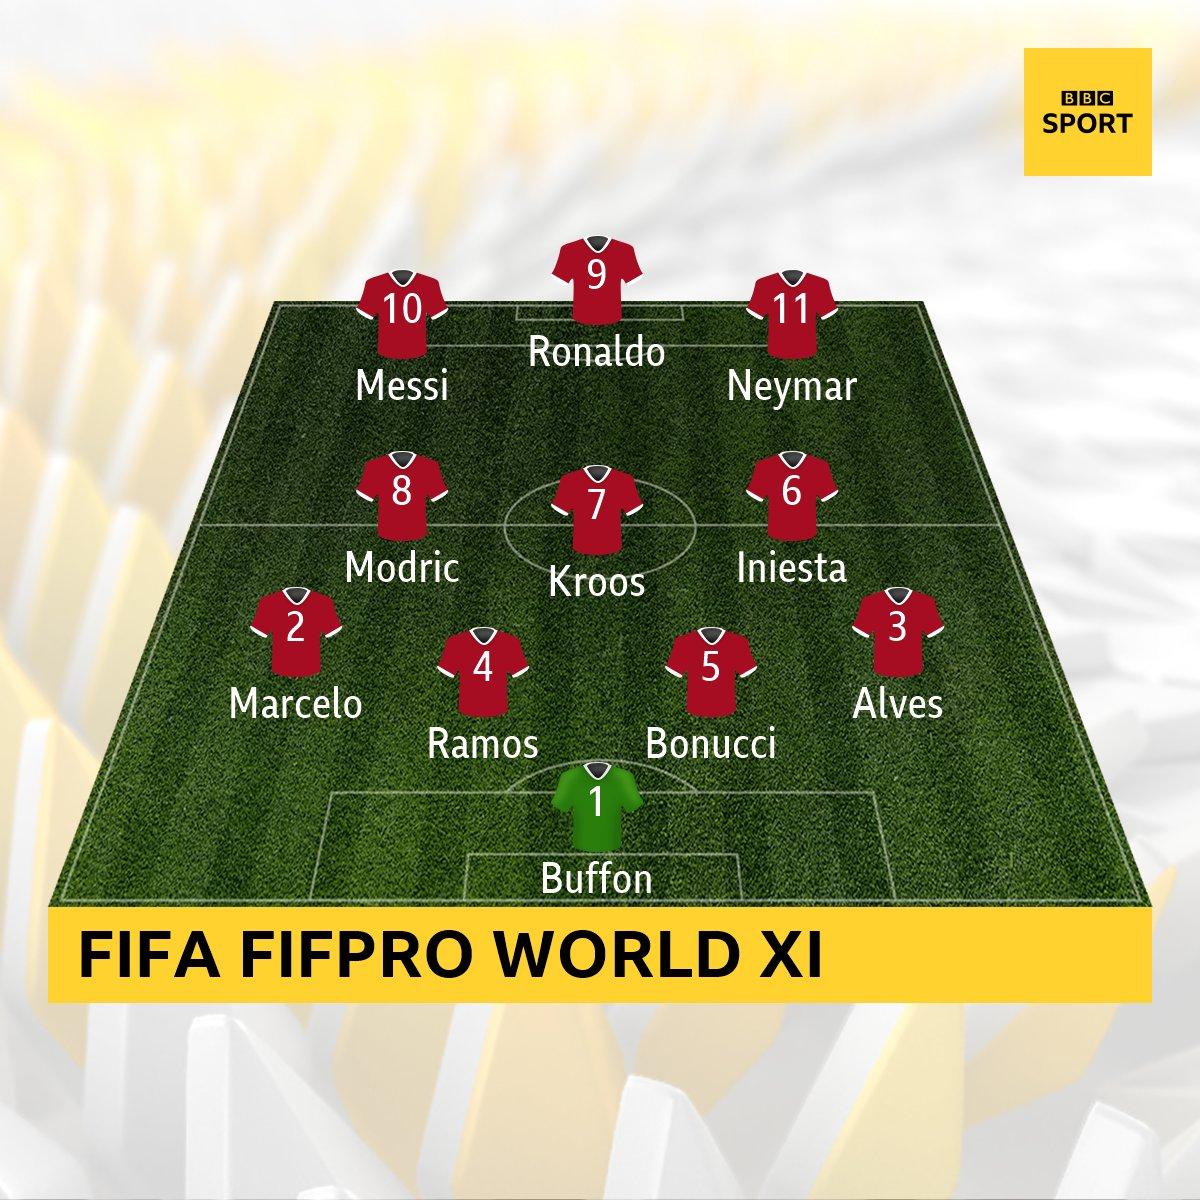 Do you agree with the Fifa FifPro World XI? https://t.co/3bYzjsR22L ht...